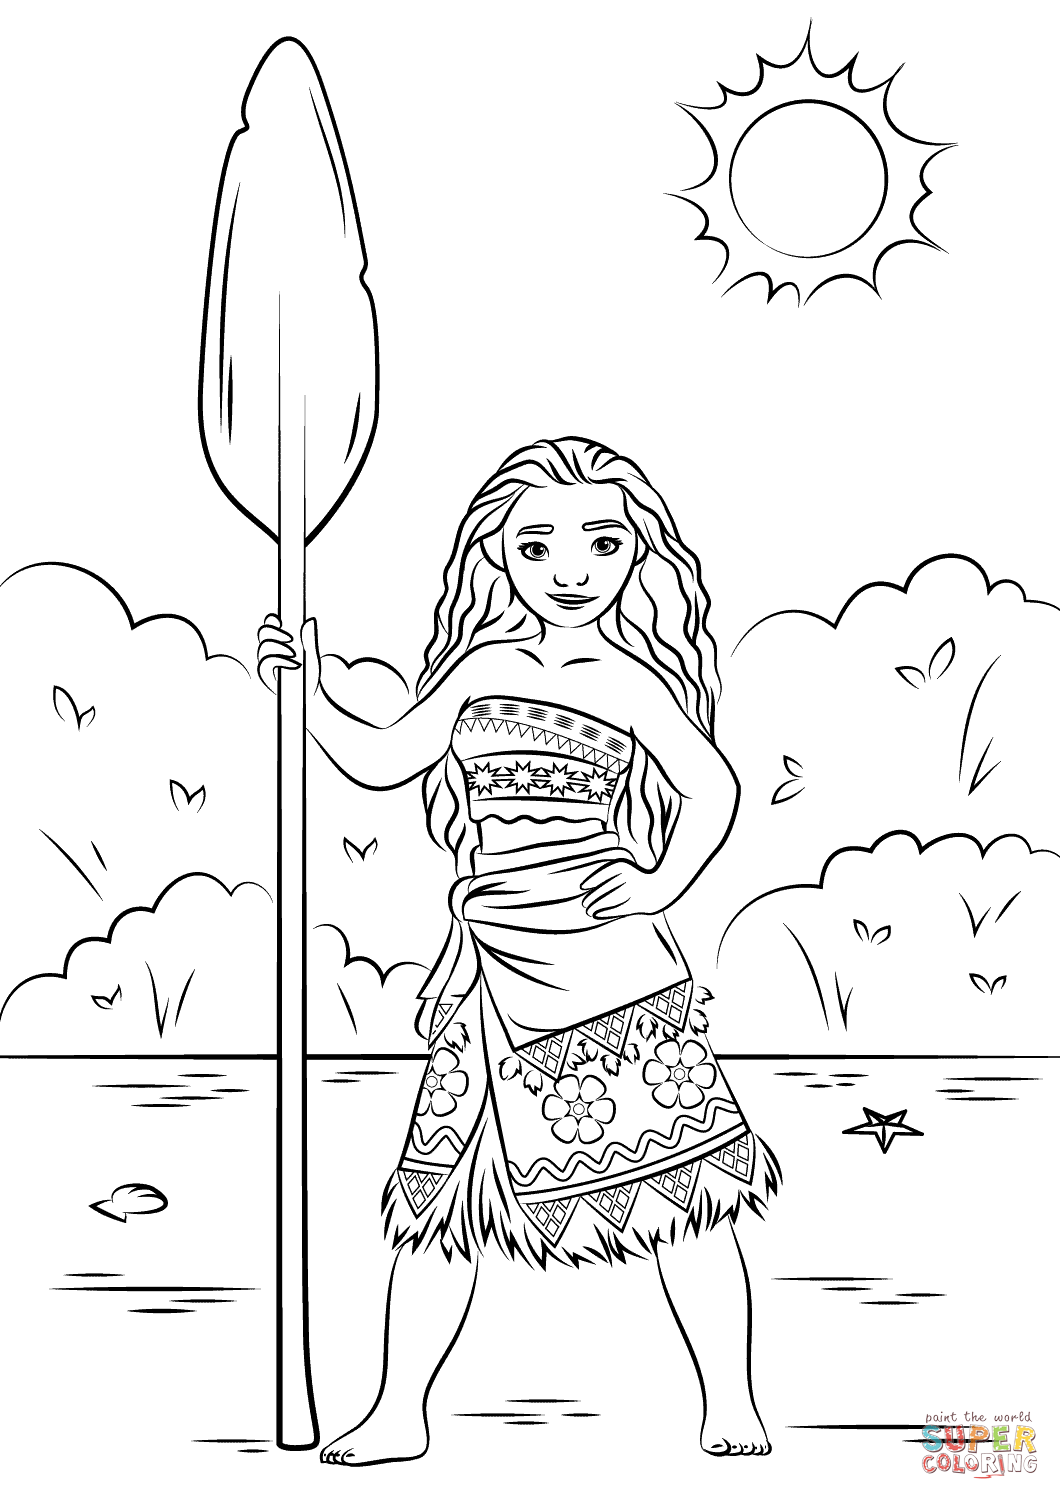 colouring pages vaiana coloriage de vaiana imprimer et. Black Bedroom Furniture Sets. Home Design Ideas